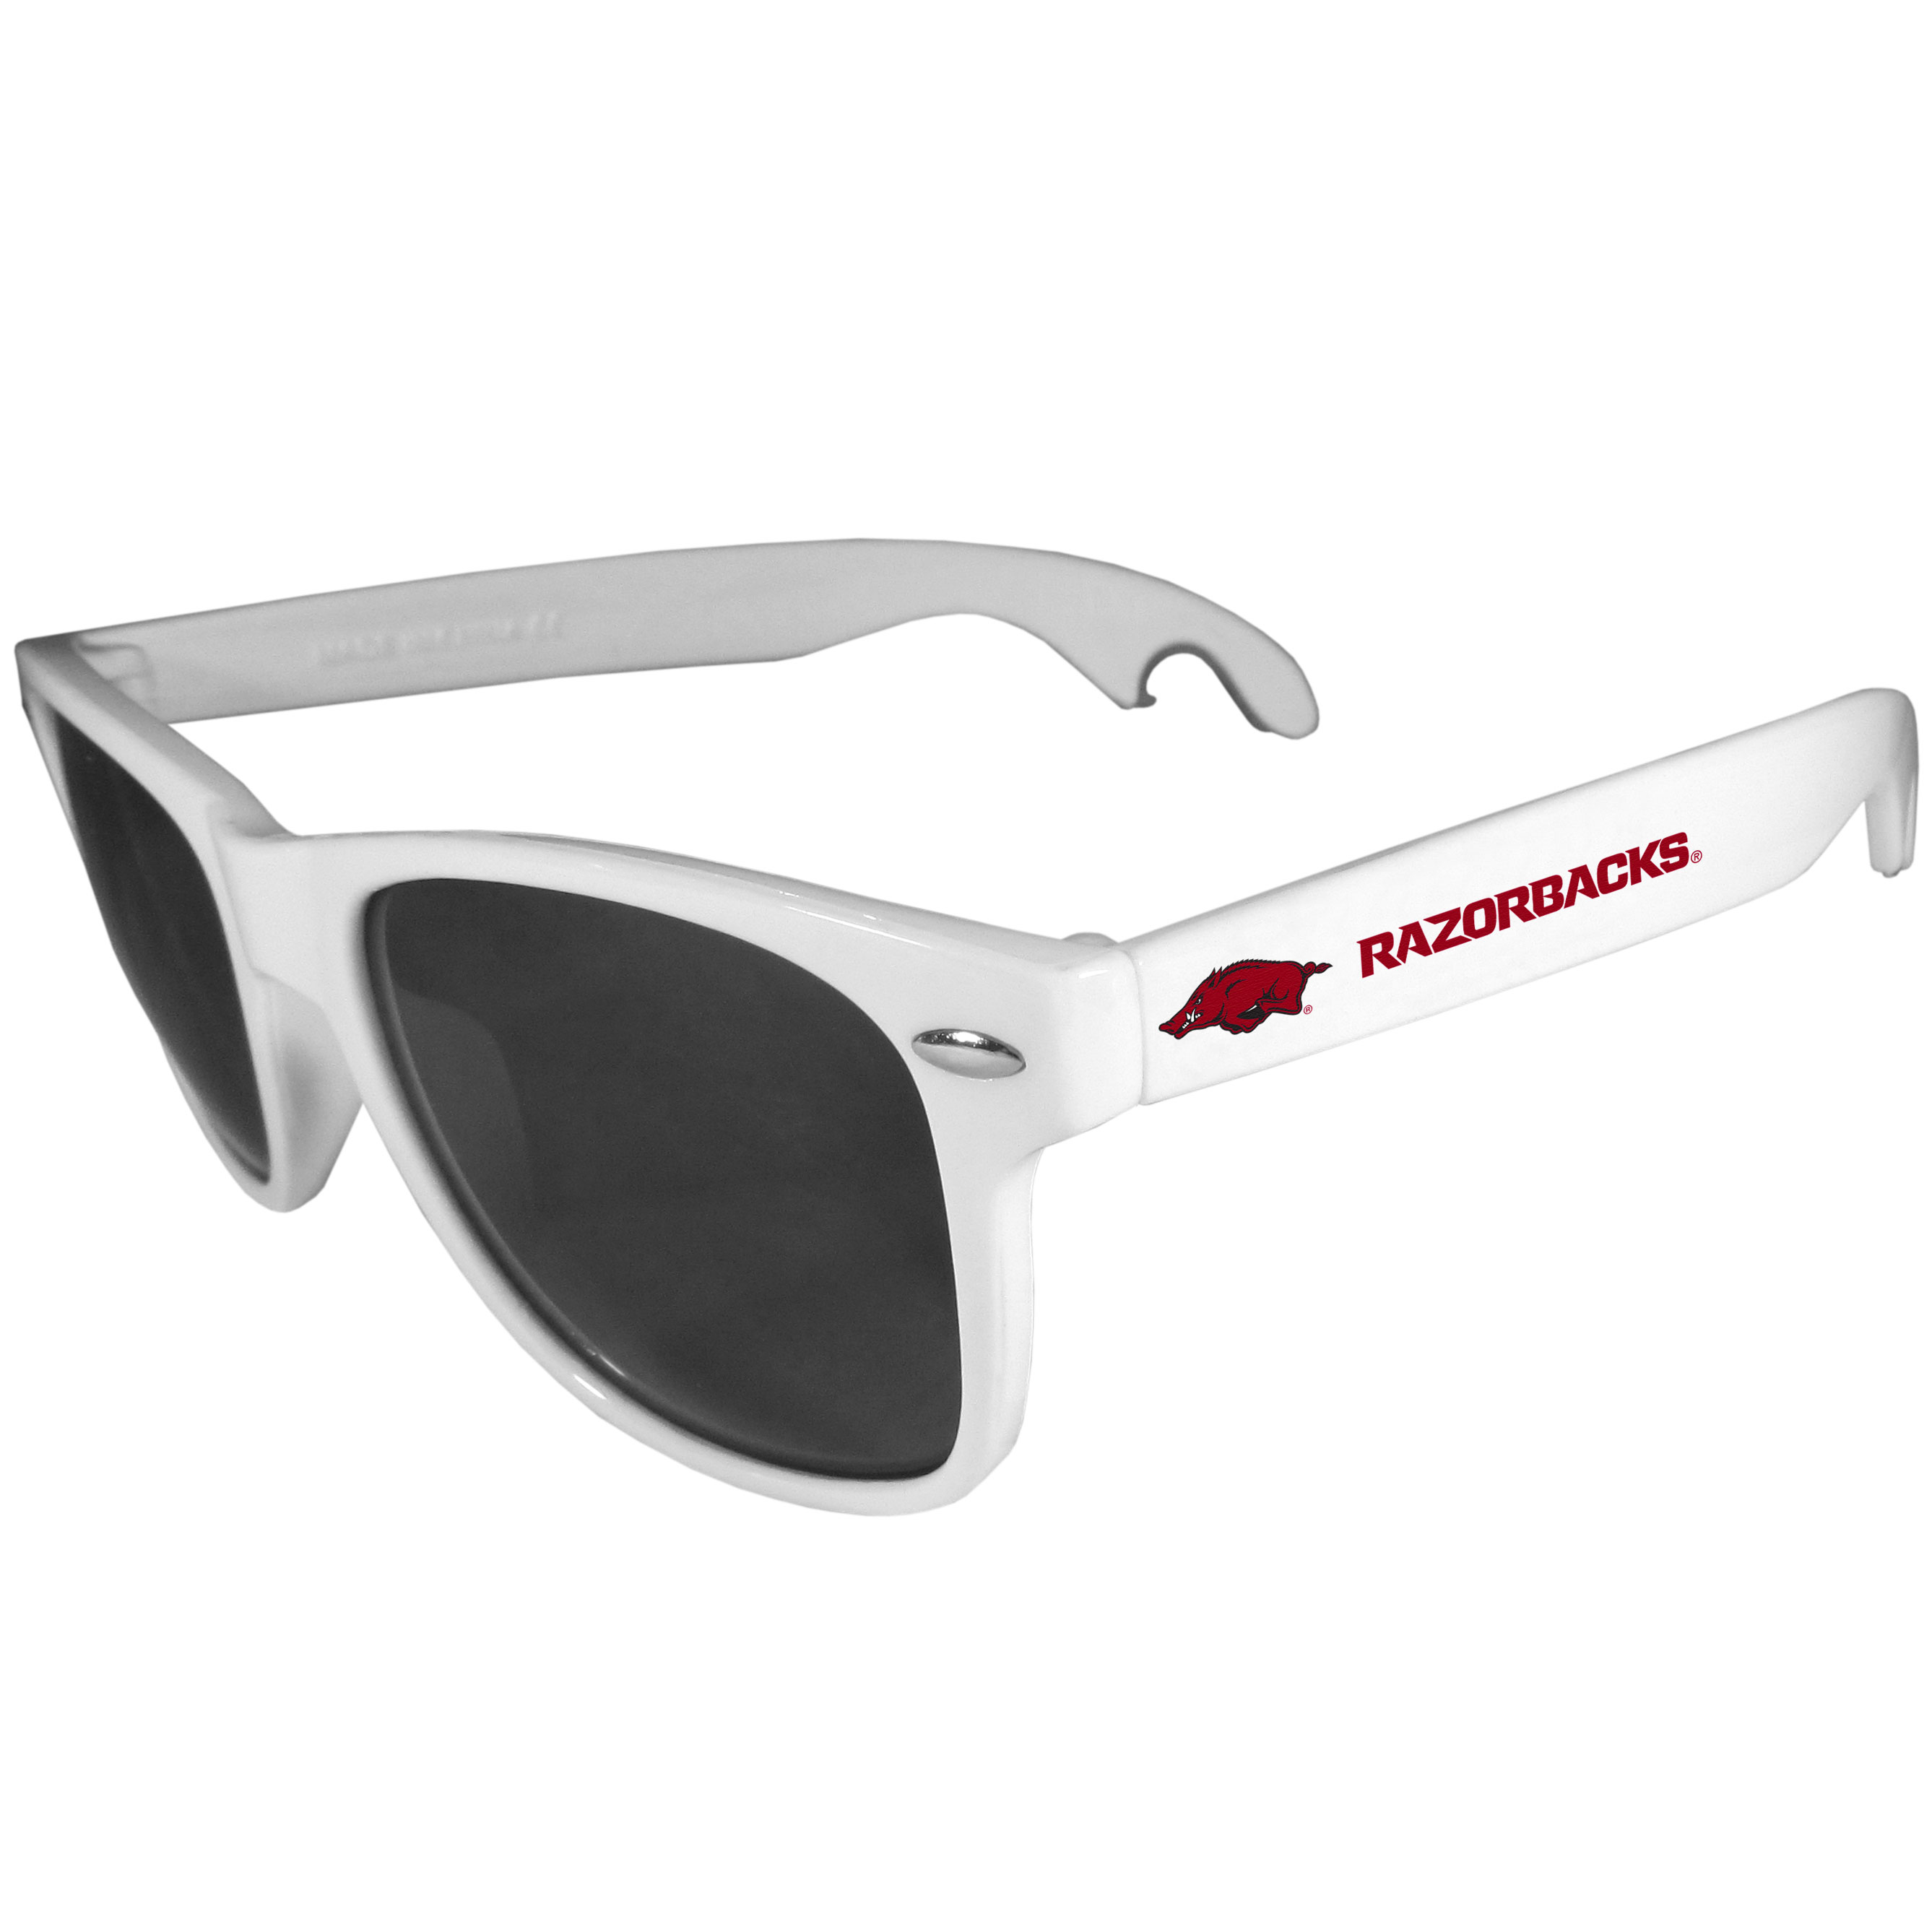 Arkansas Razorbacks Beachfarer Bottle Opener Sunglasses, White - Seriously, these sunglasses open bottles! Keep the party going with these amazing Arkansas Razorbacks bottle opener sunglasses. The stylish retro frames feature team designs on the arms and functional bottle openers on the end of the arms. Whether you are at the beach or having a backyard BBQ on game day, these shades will keep your eyes protected with 100% UVA/UVB protection and keep you hydrated with the handy bottle opener arms.